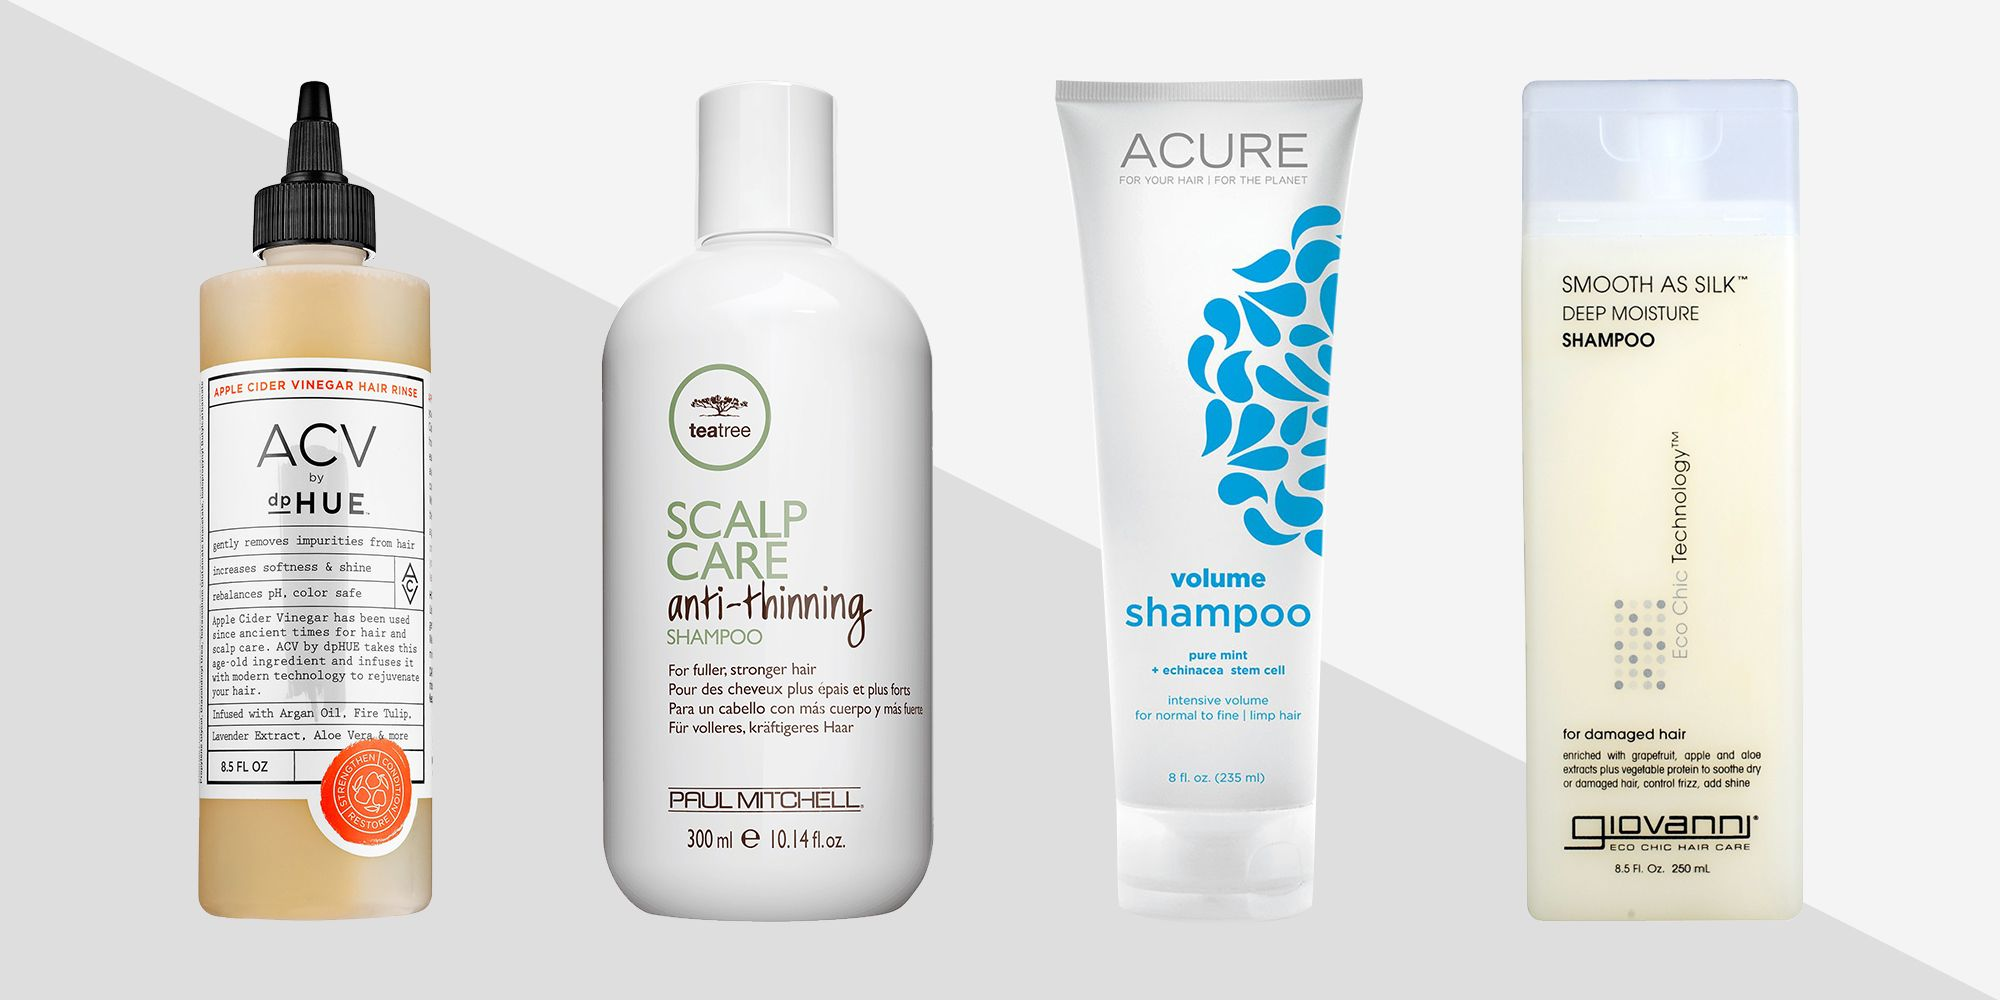 Best Sulfate-Free Shampoos of 2019 Available In India – Our Top 10